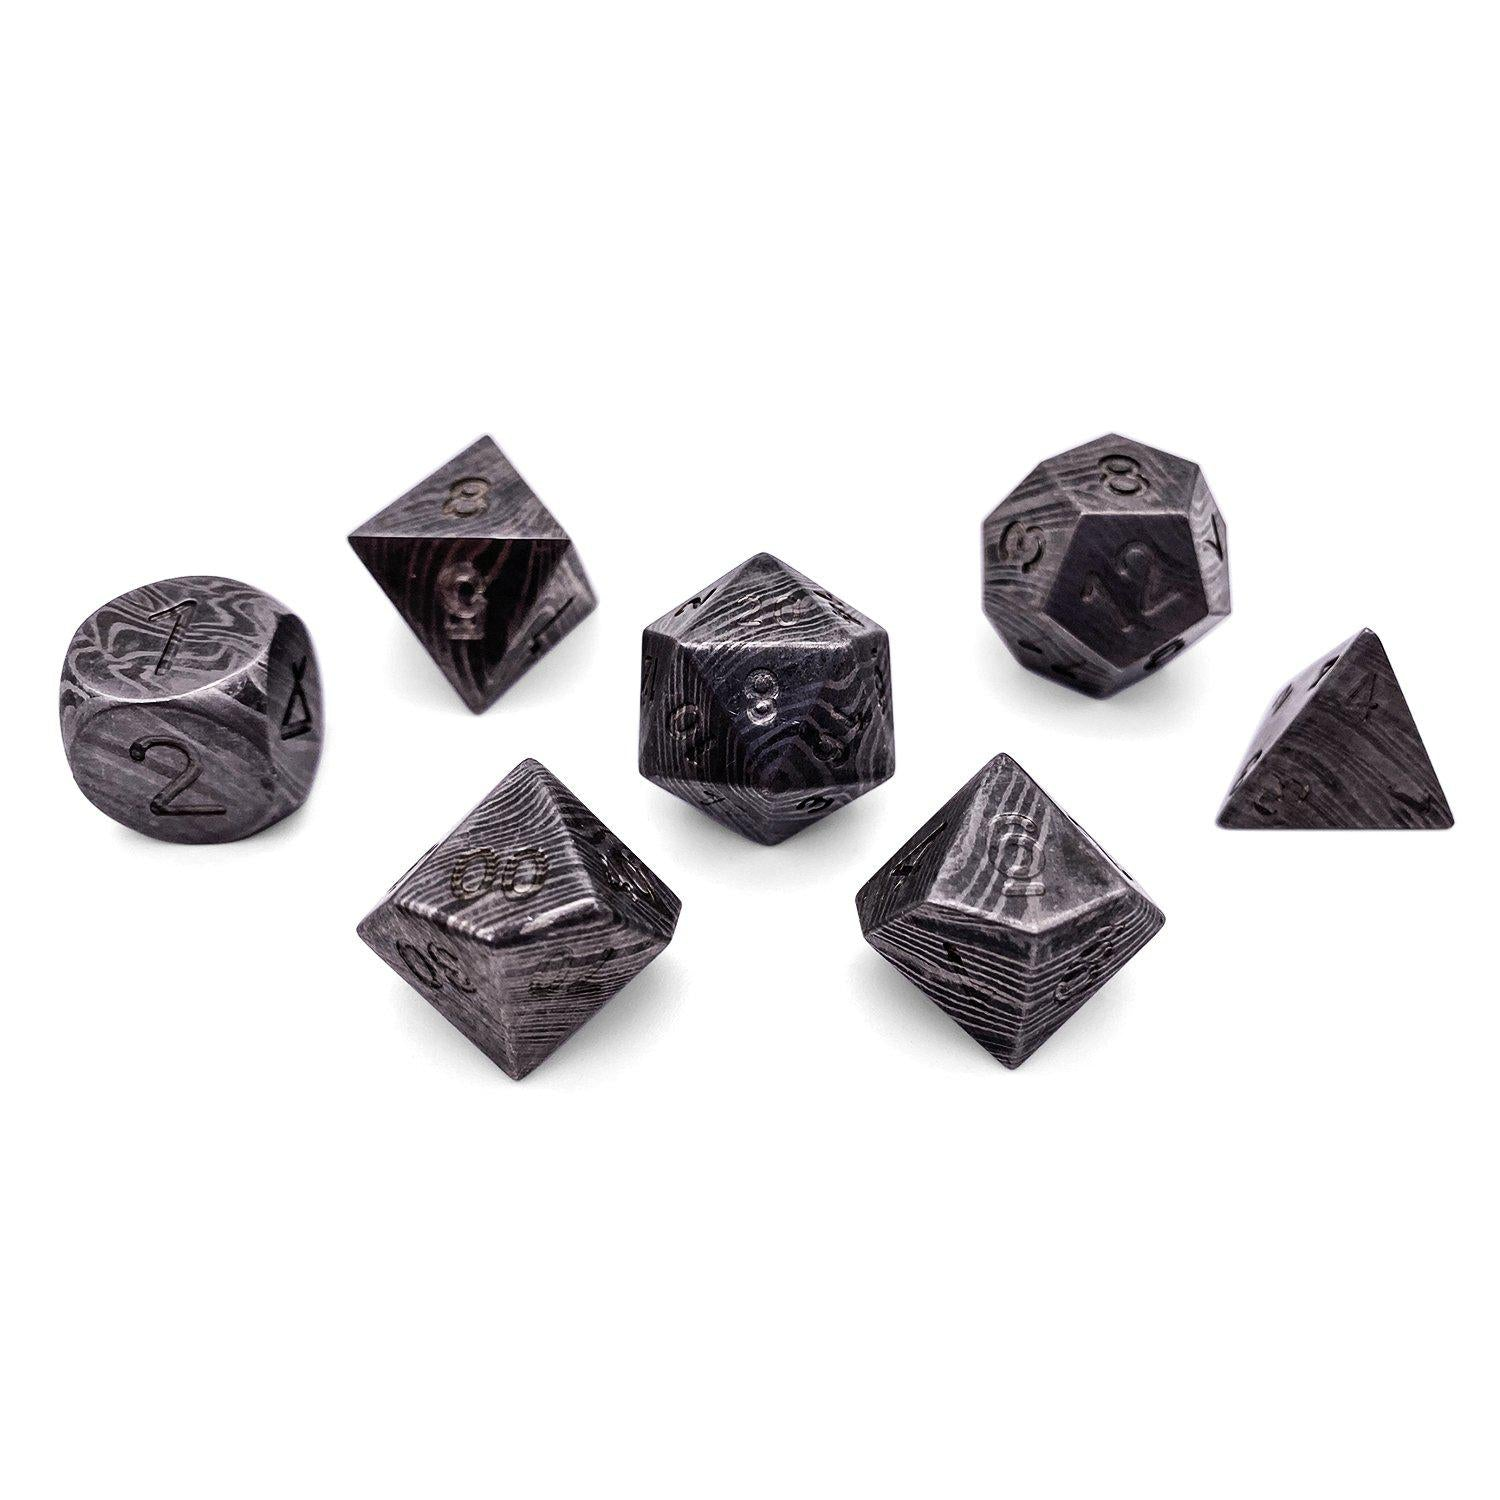 Set of 7 Damascus Steel RPG Dice by Norse Foundry Polyhedral Dice Set